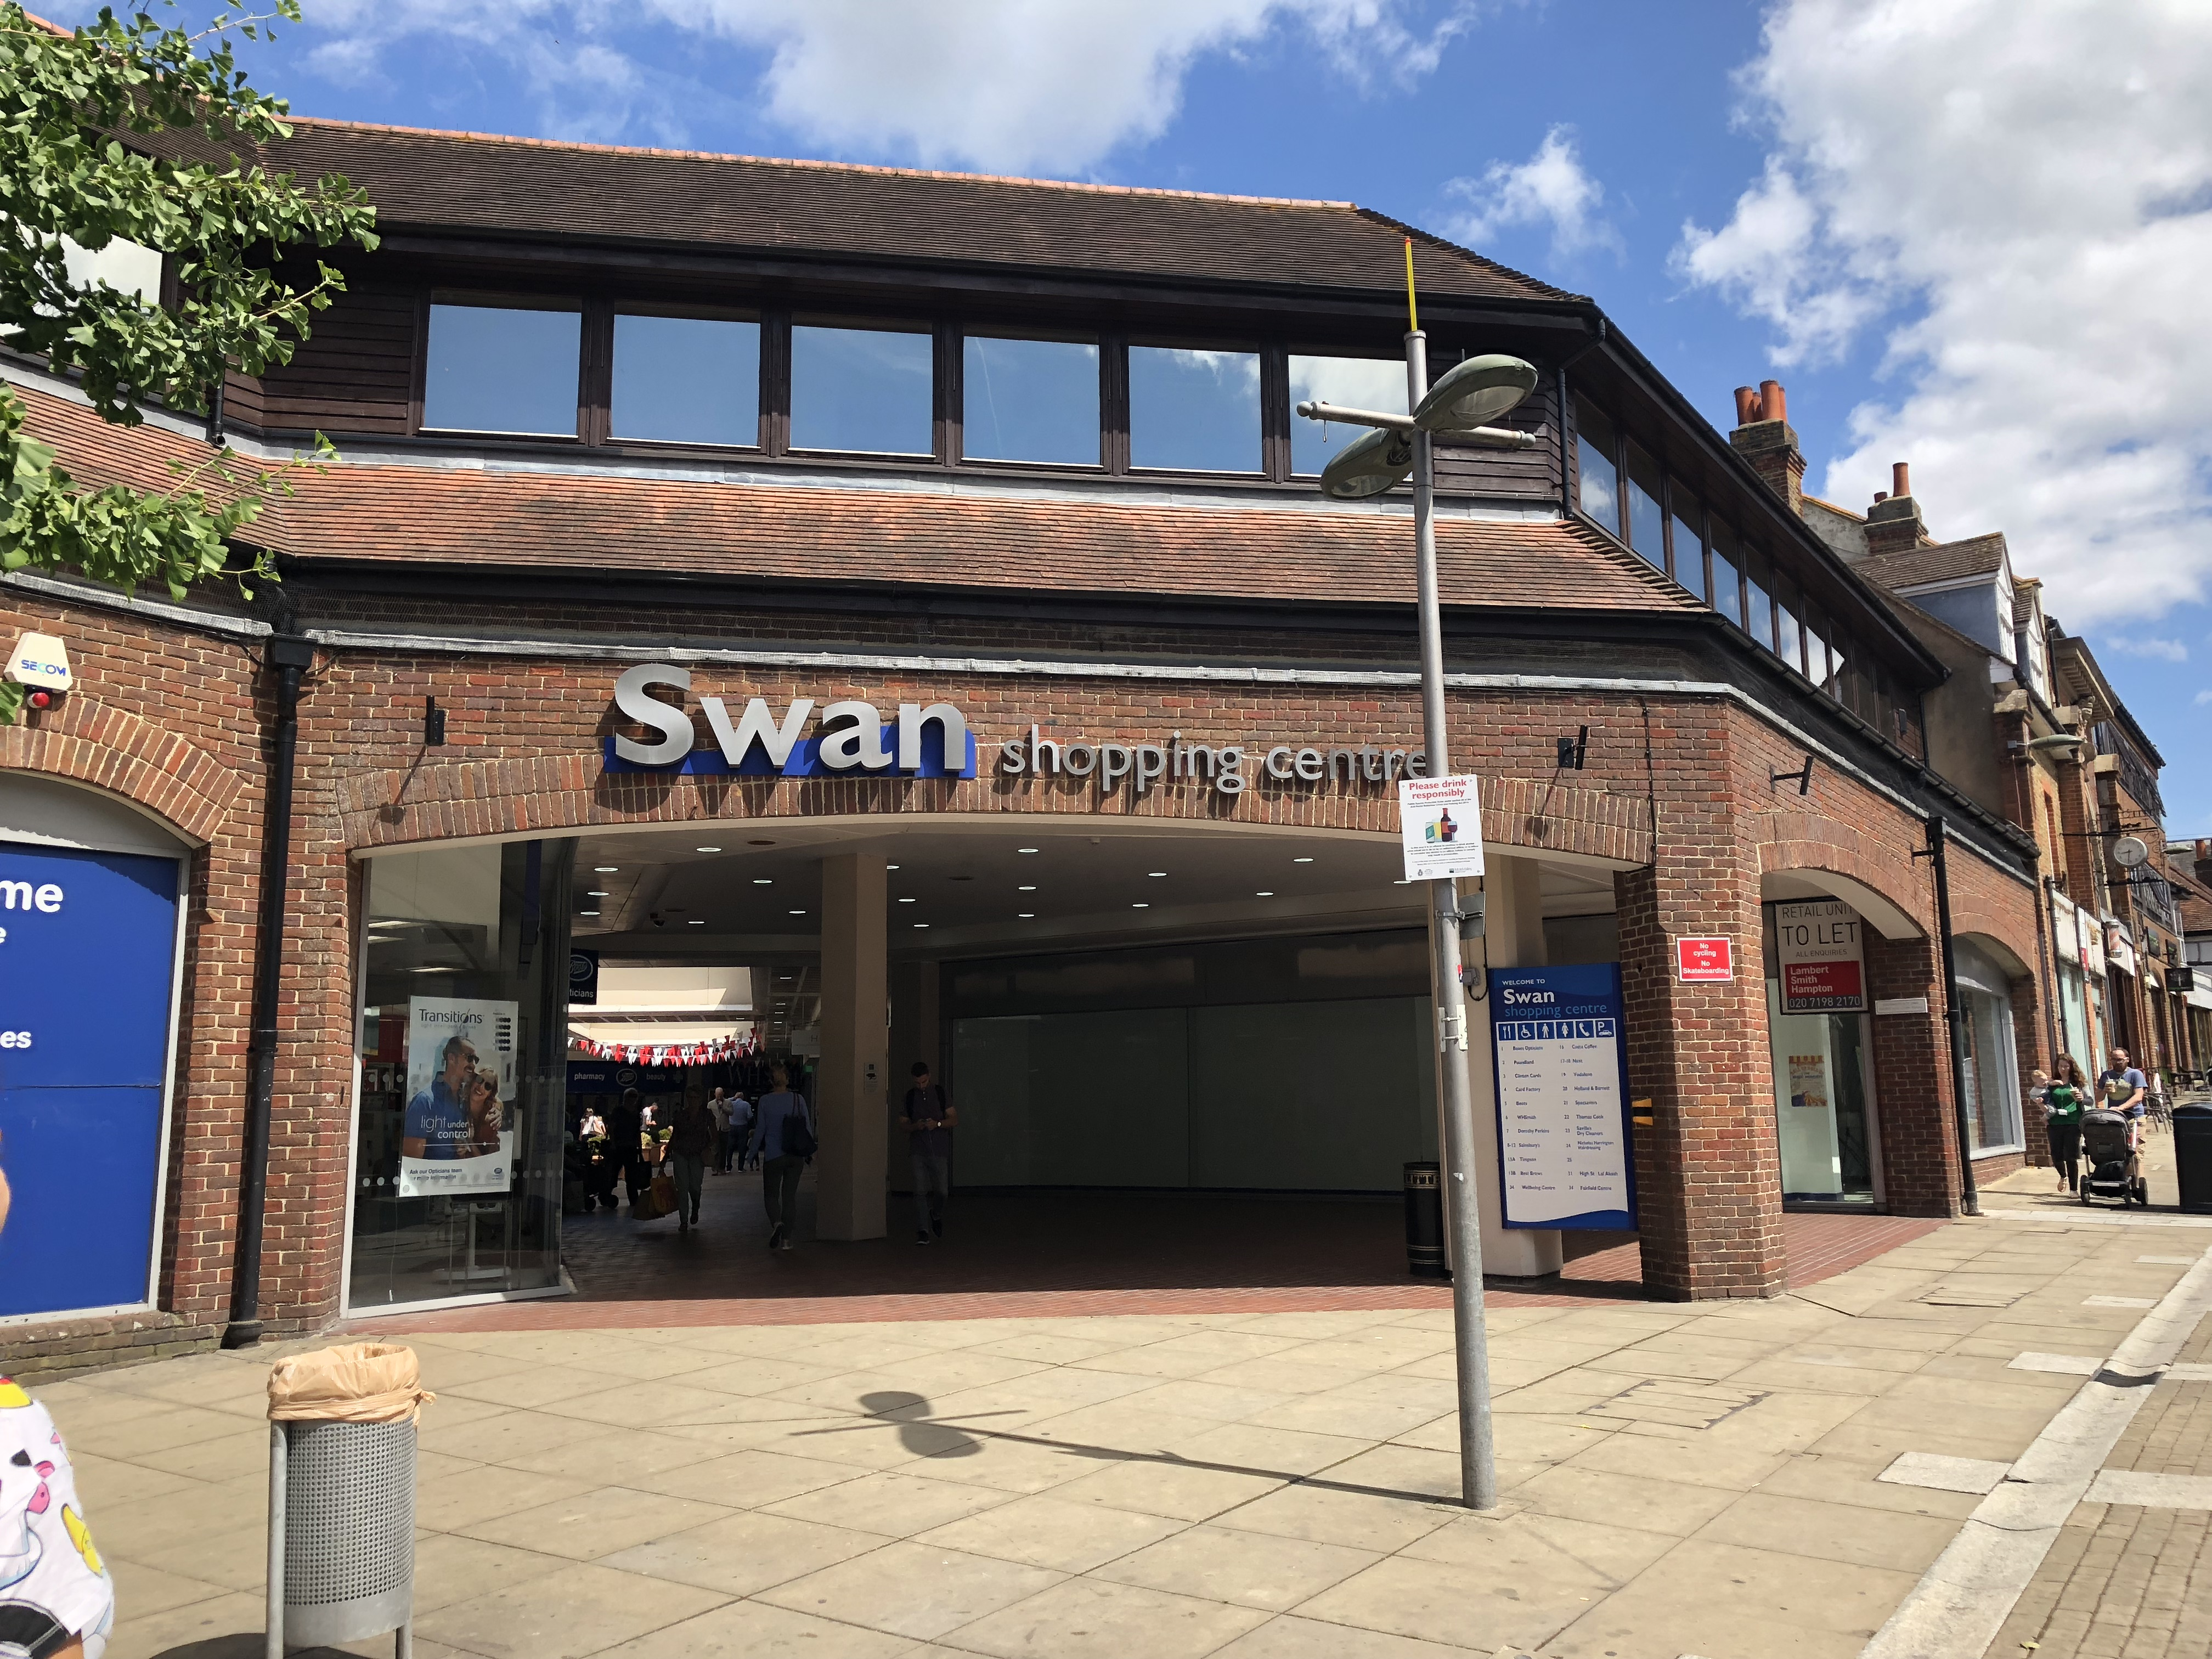 Swan Centre on the High Street